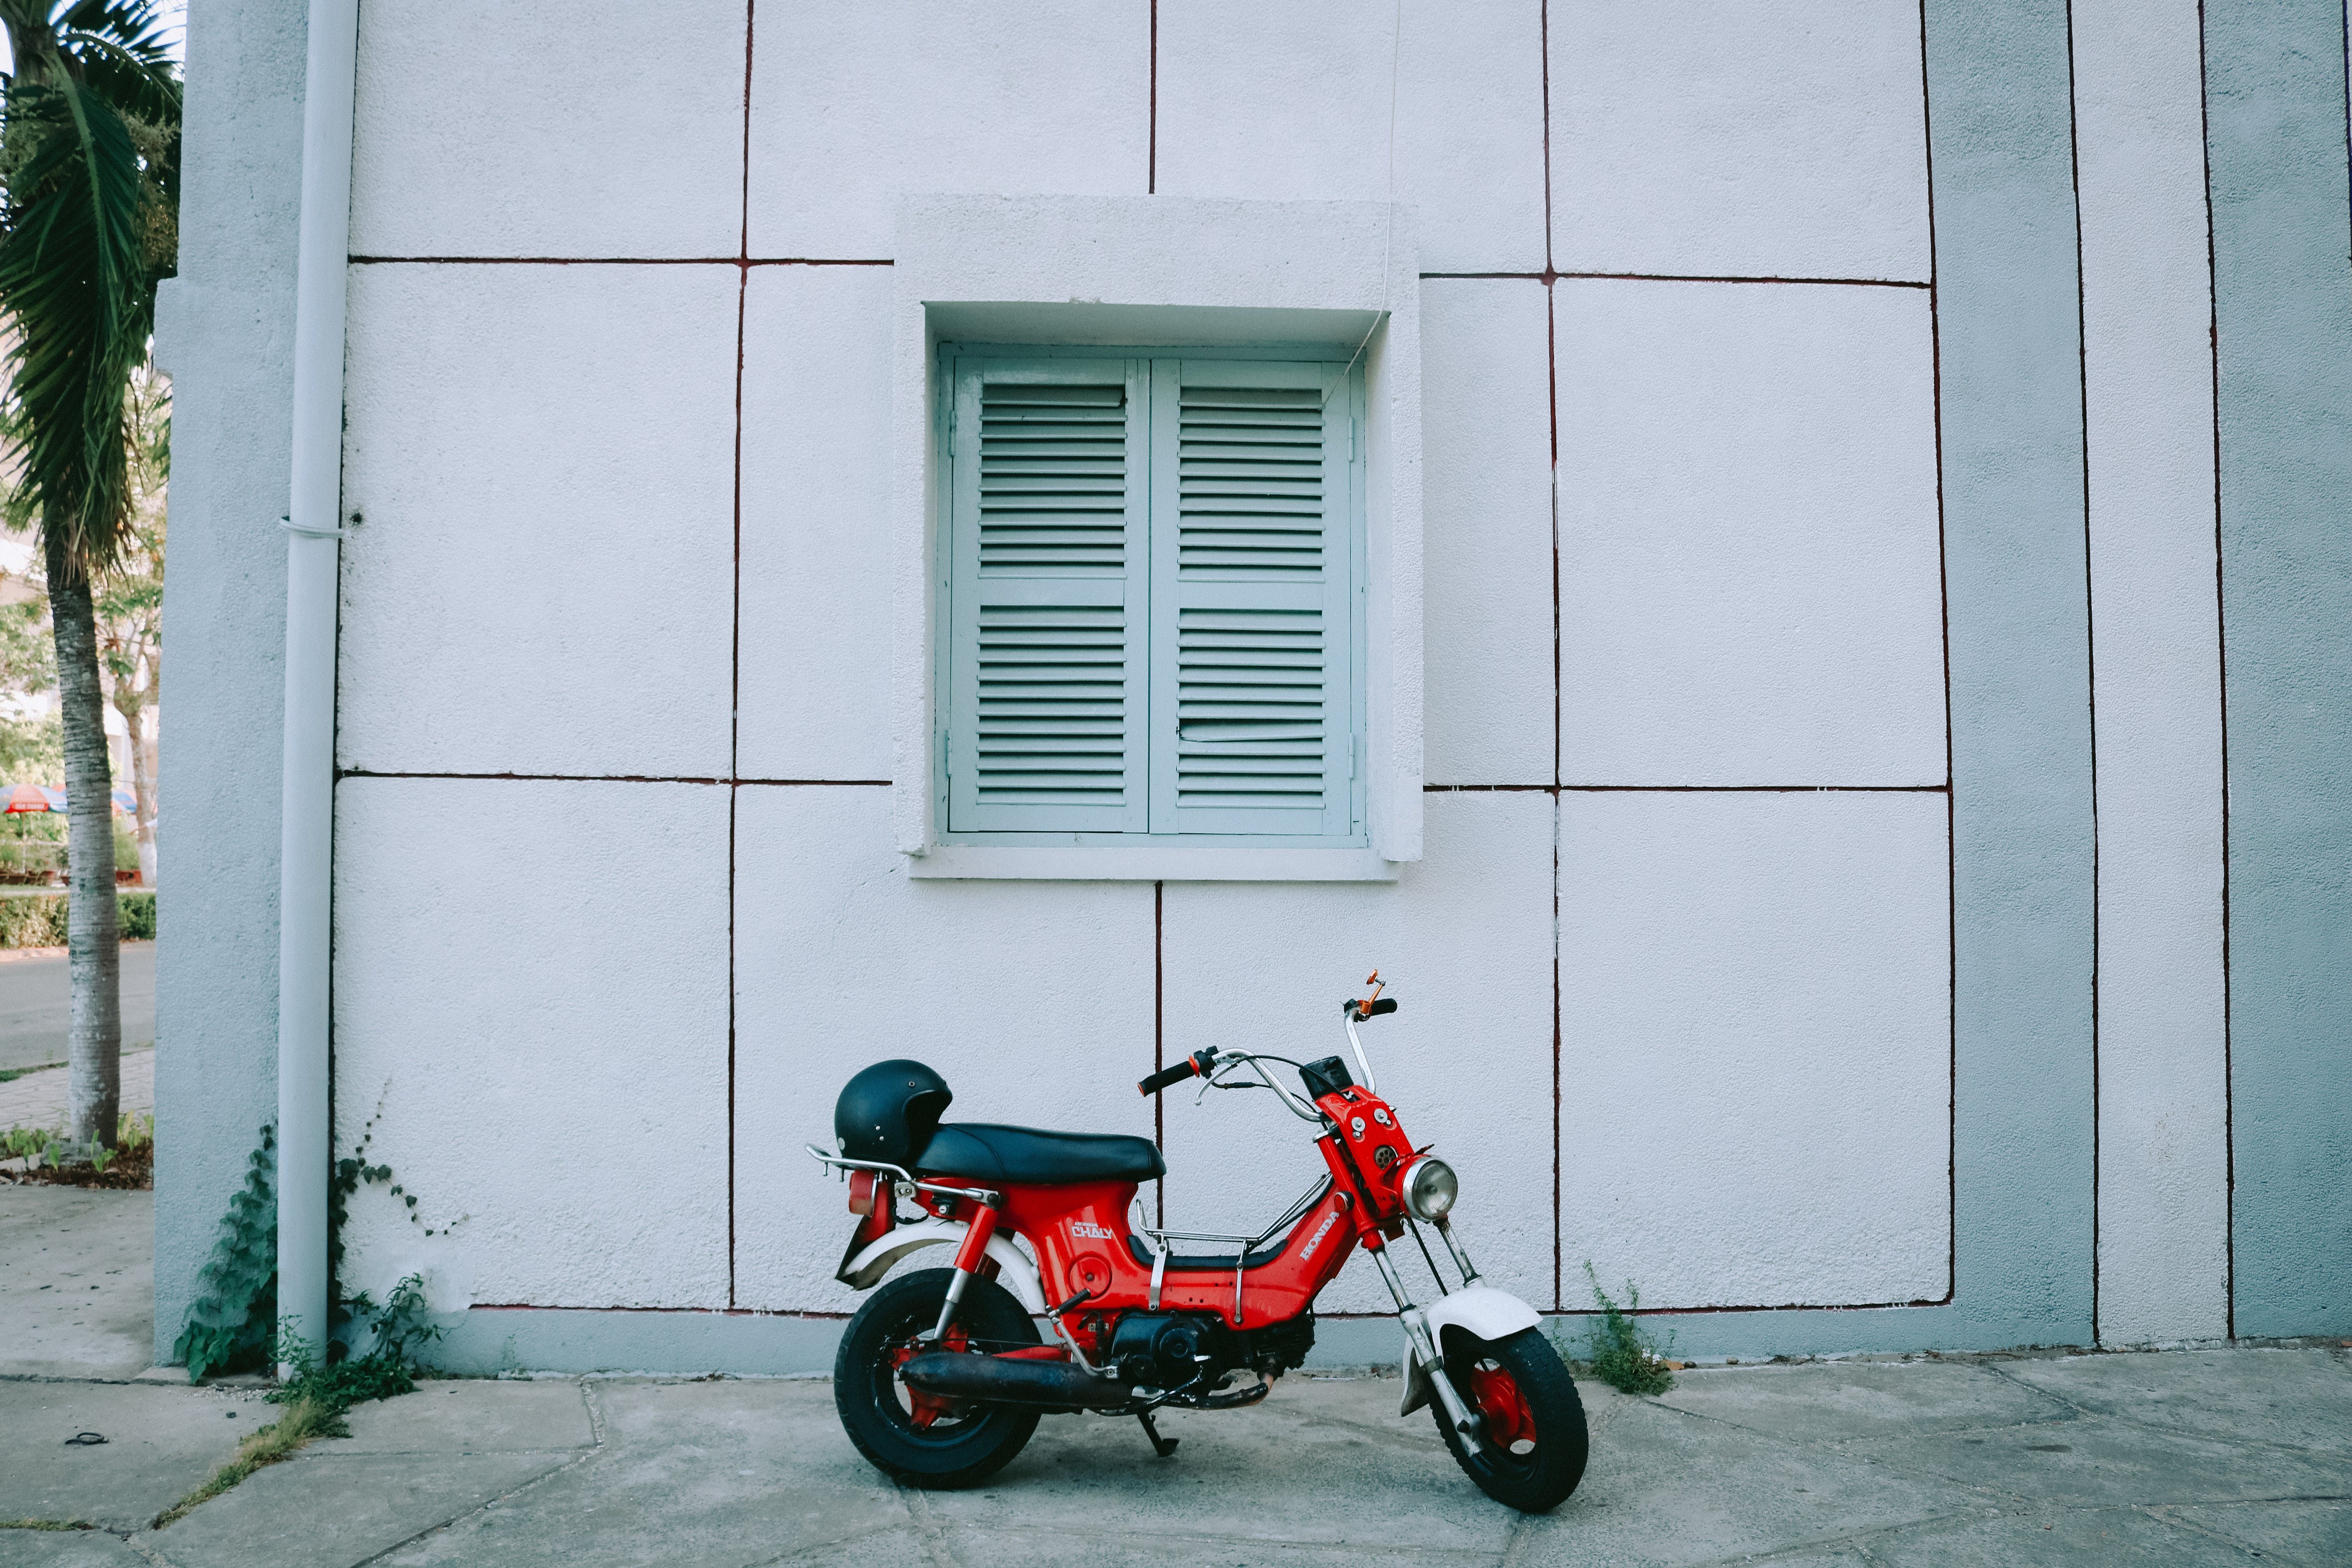 Red Motor Scooter Parked Beside White Concrete Building